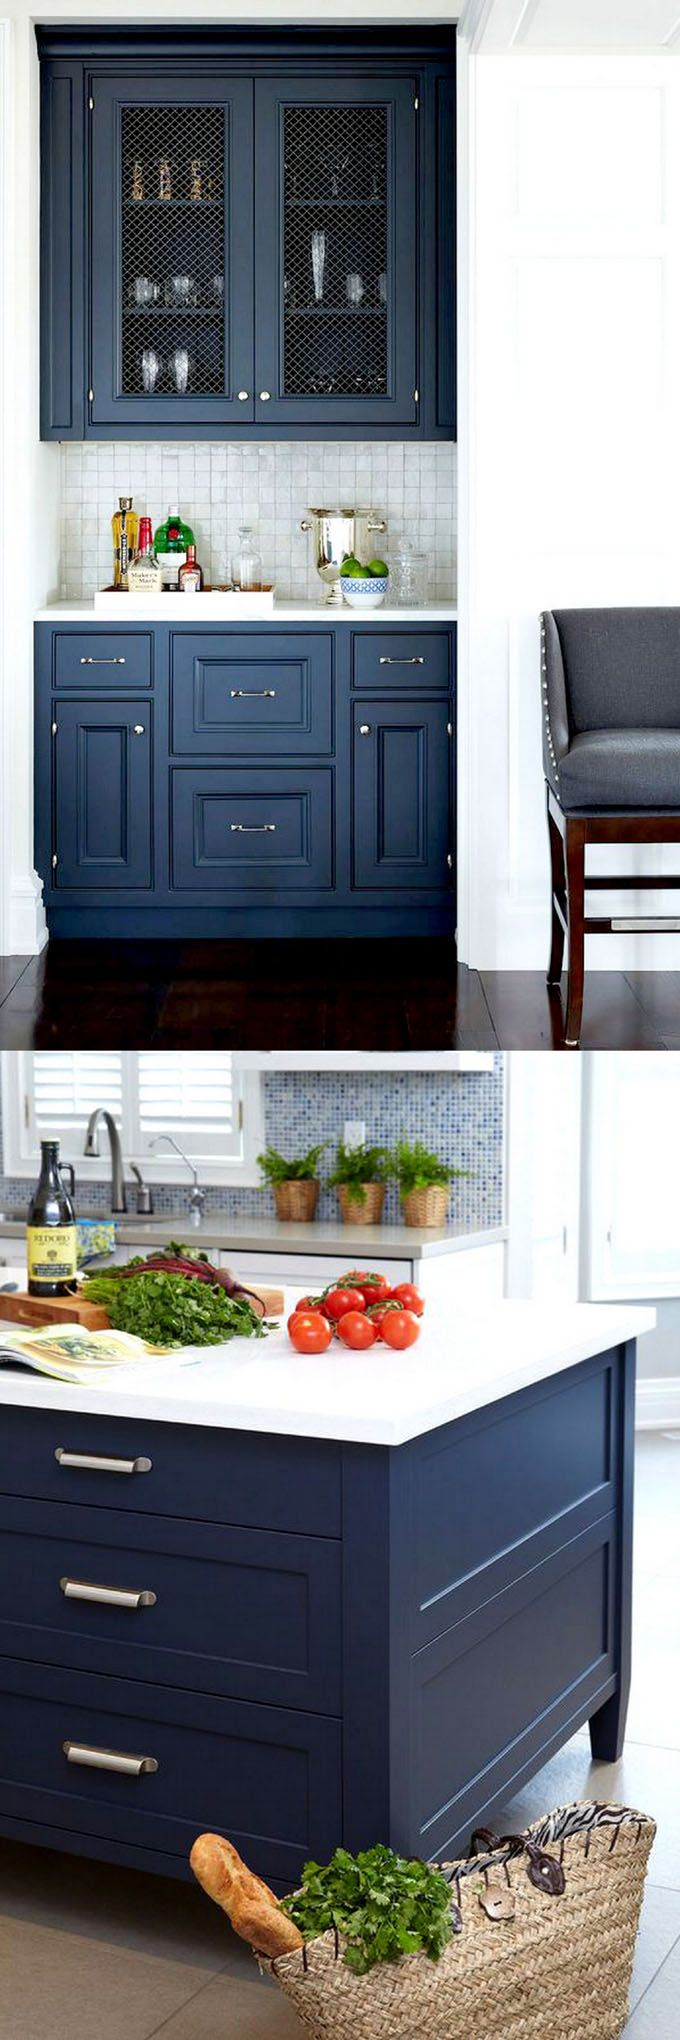 25 Gorgeous Kitchen Cabinet Colors Paint Color Combos Beautiful Kitchen Cabinets Kitchen Cabinet Colors Kitchen Renovation